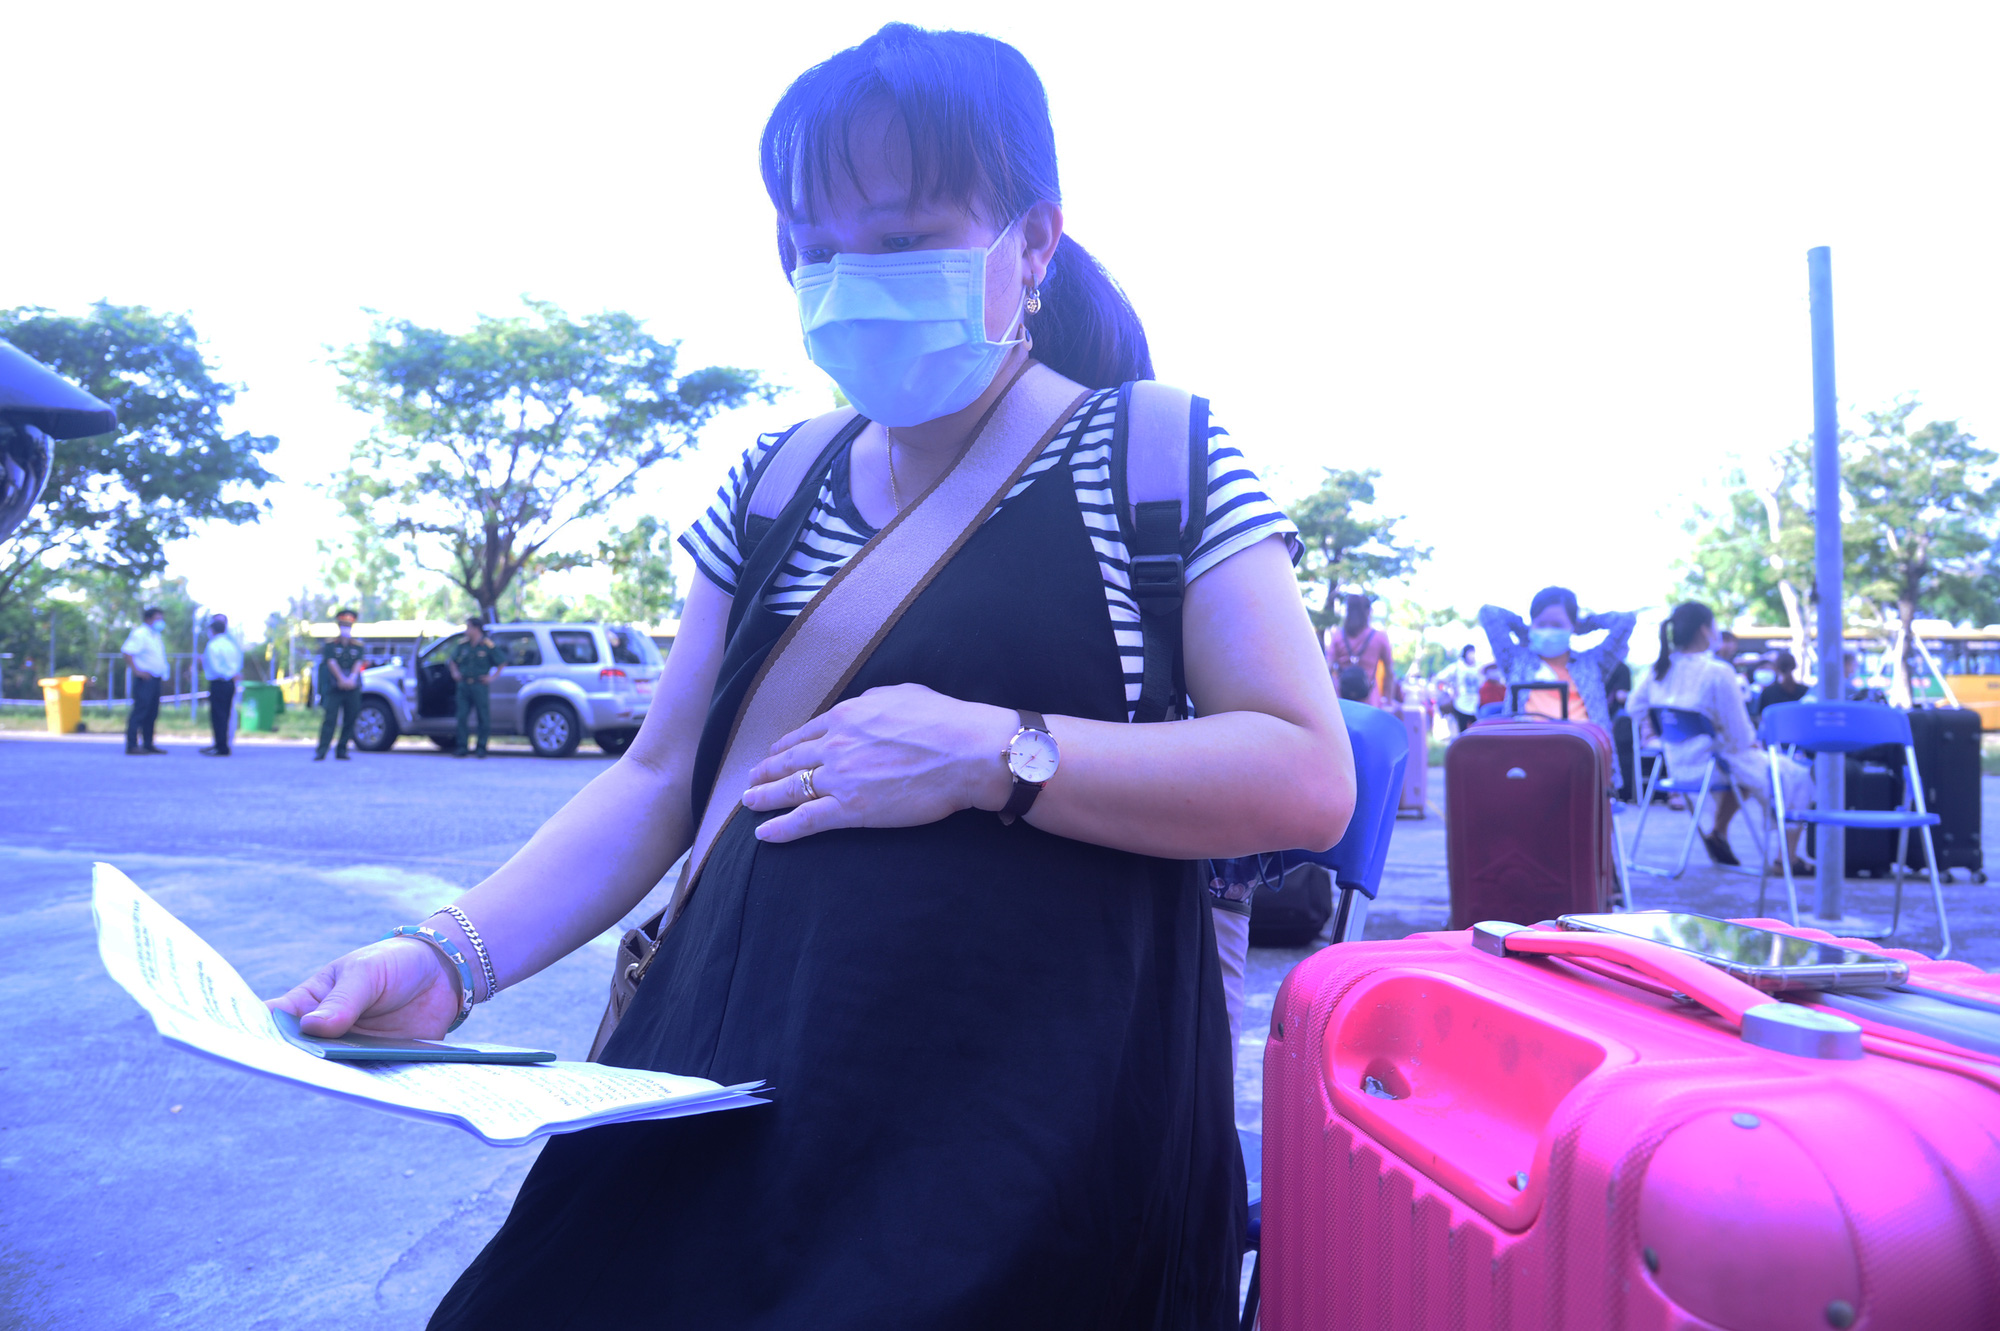 A pregnant woman holds her novel coronavirus disease (COVID-19) all-clear certificate after completing mandatory quarantine at a facility in Quang Nam Province, Vietnam, June 12, 2020. Photo: Le Trung / Tuoi Tre